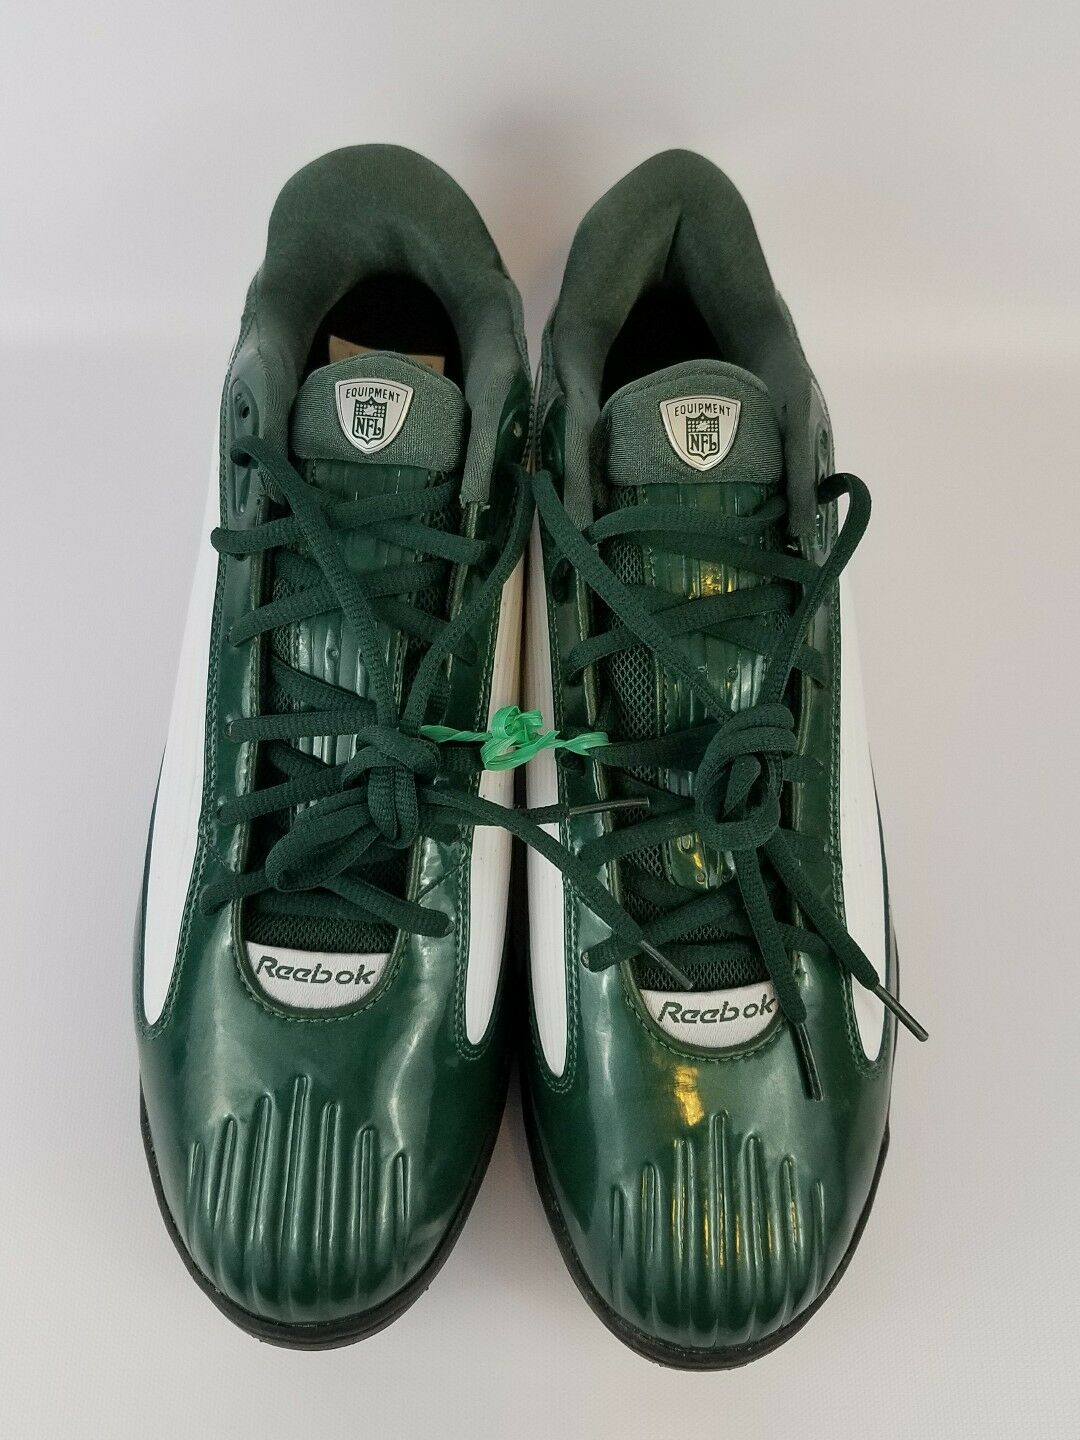 NEW Mens Reebok NFL Equipment US 13.5 Green White Cleats Sports Shoes RB408KTS20